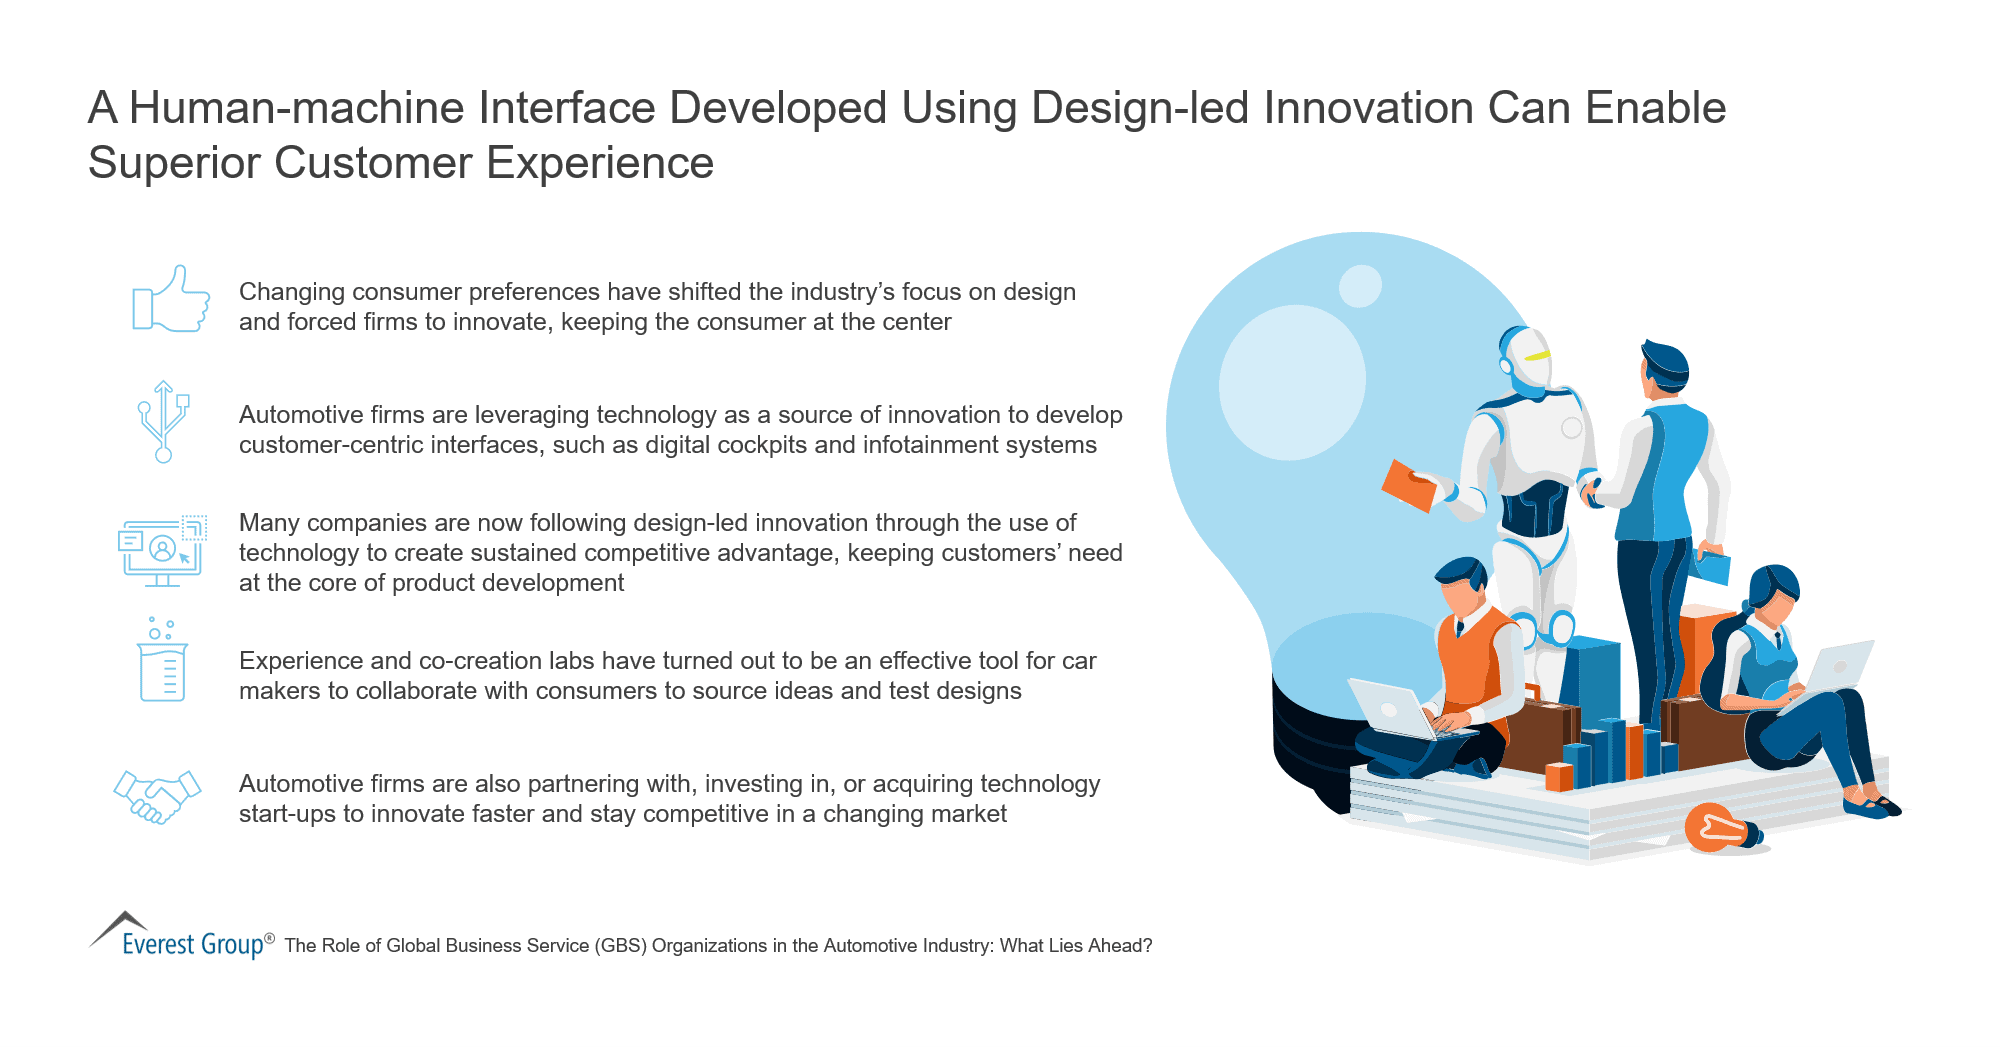 A Human-machine Interface Developed Using Design-led Innovation Can Enable Superior Customer Experience